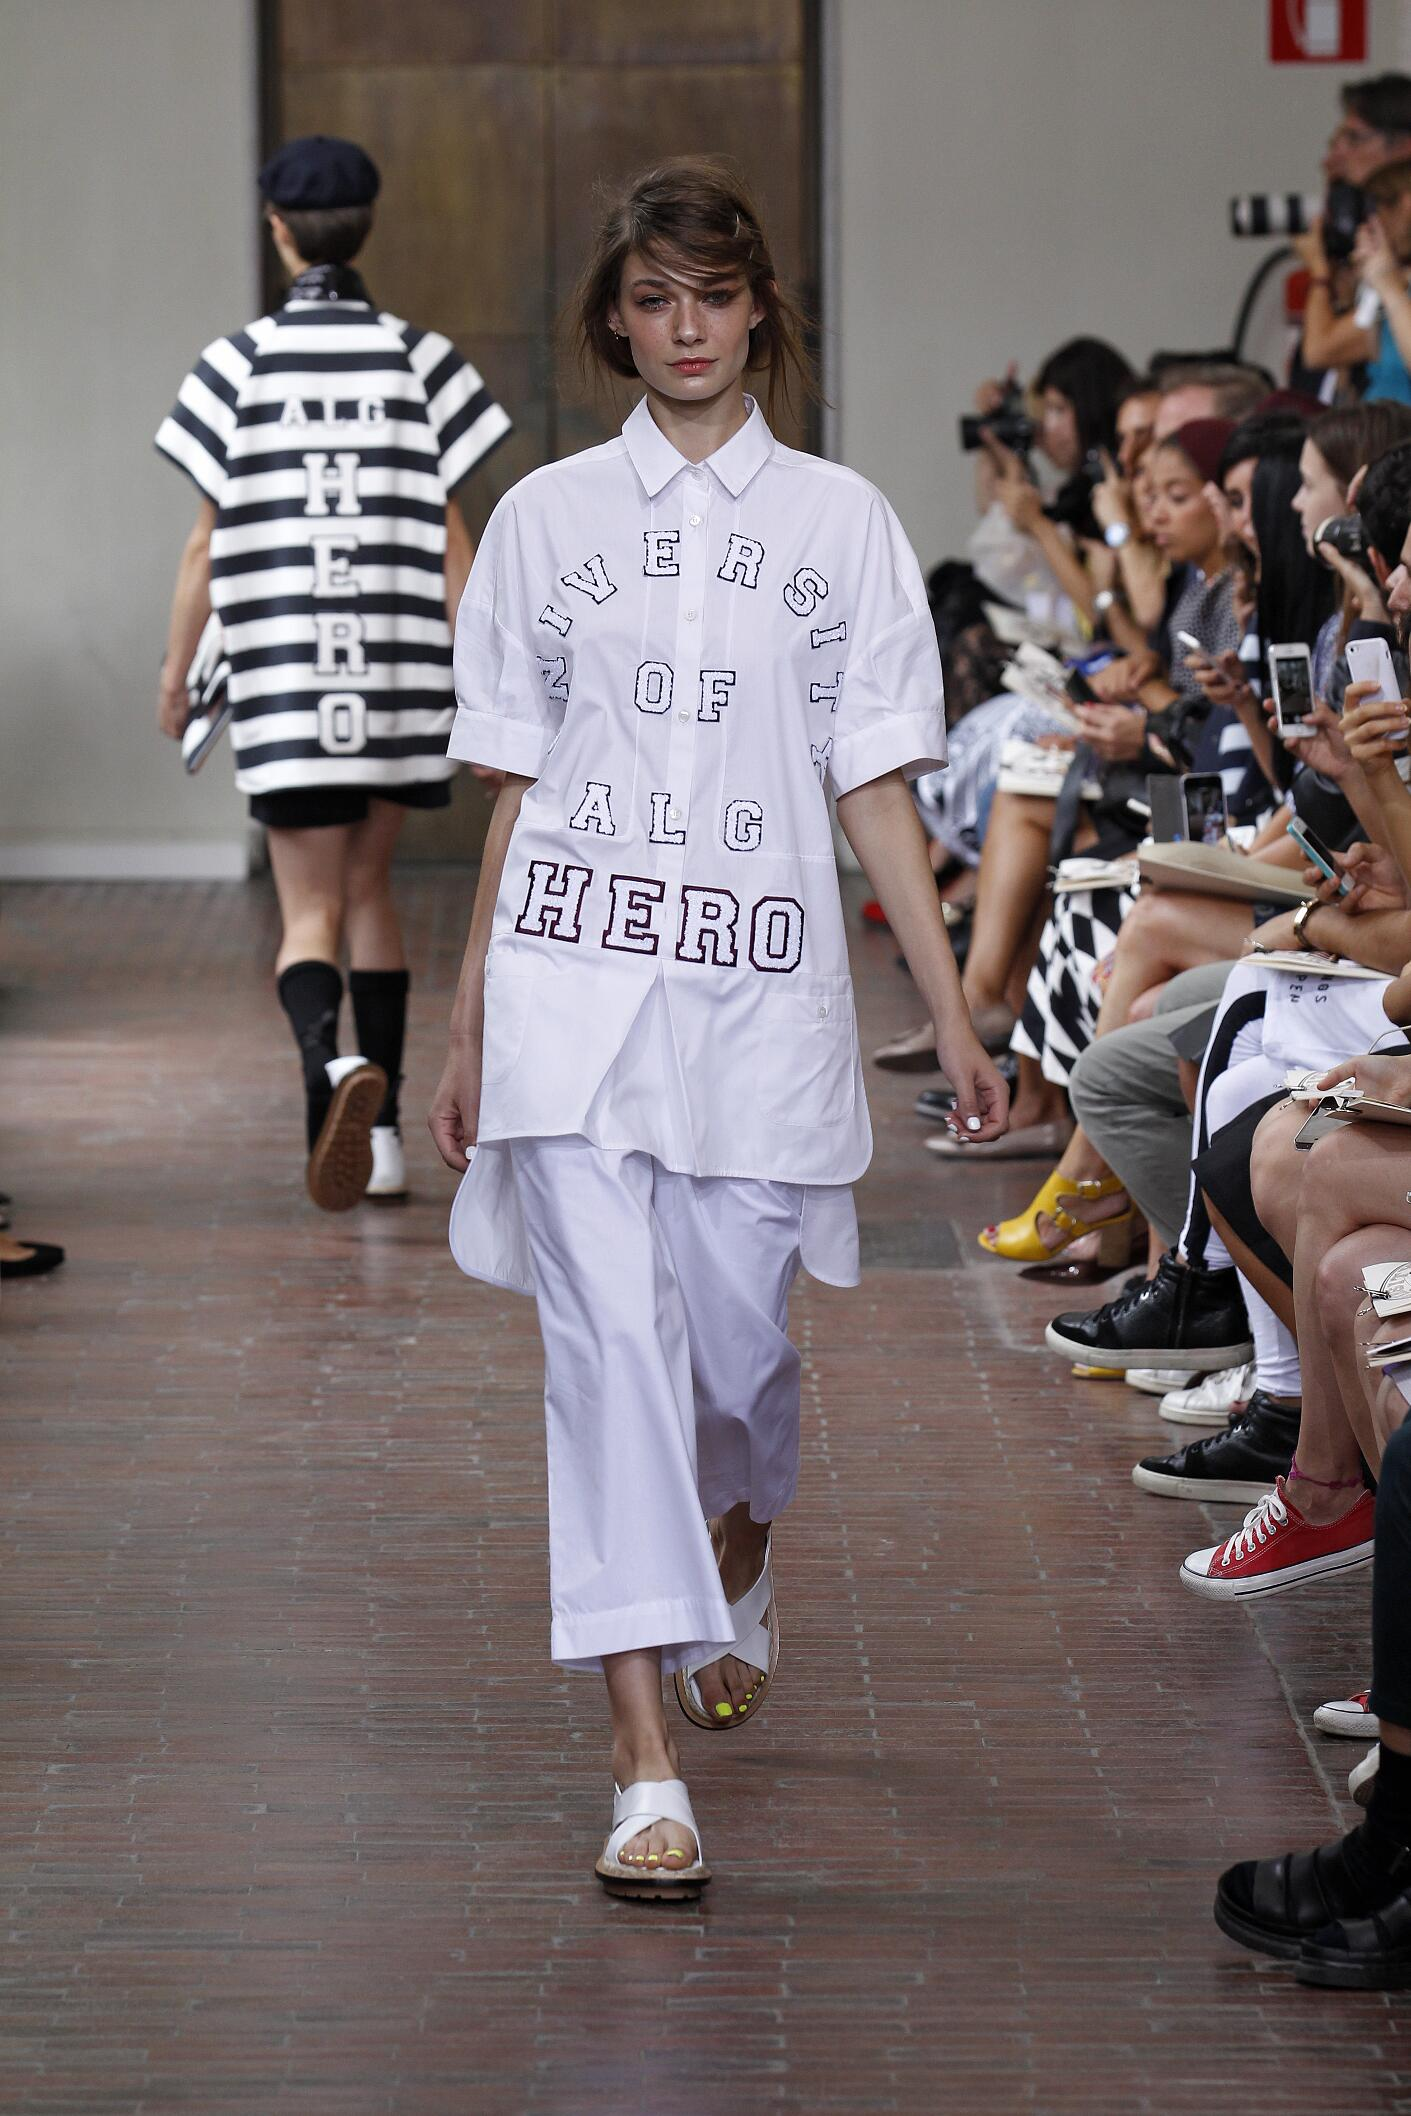 Spring Summer 2015 Fashion Model I'm Isola Marras